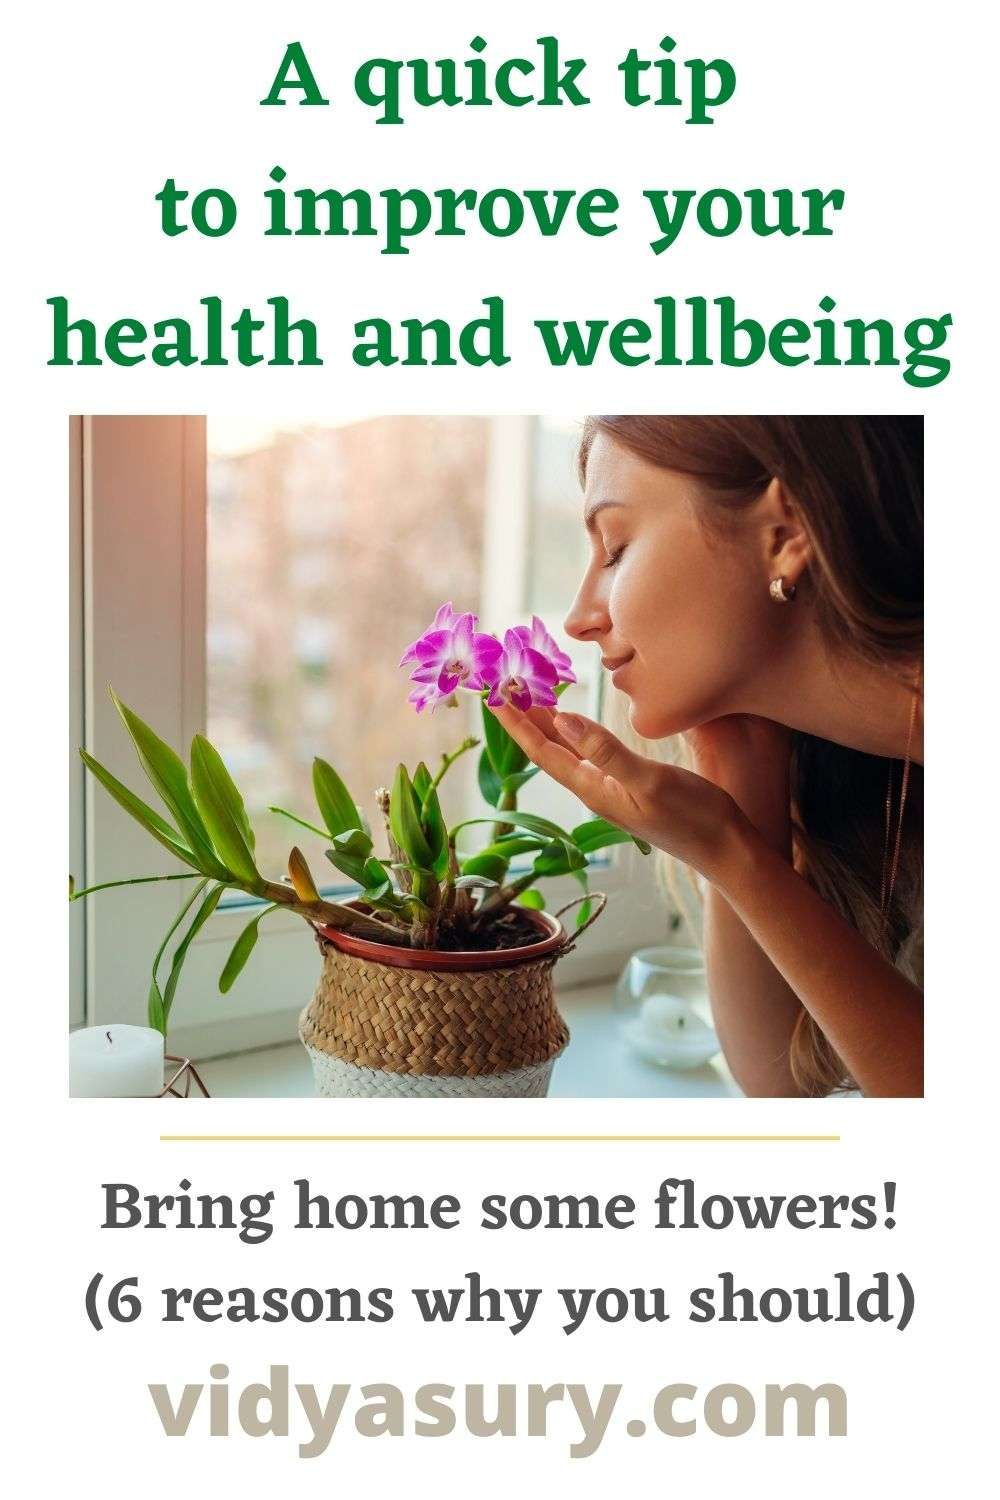 A quick tip to improve your health and wellbeing with flowers at home